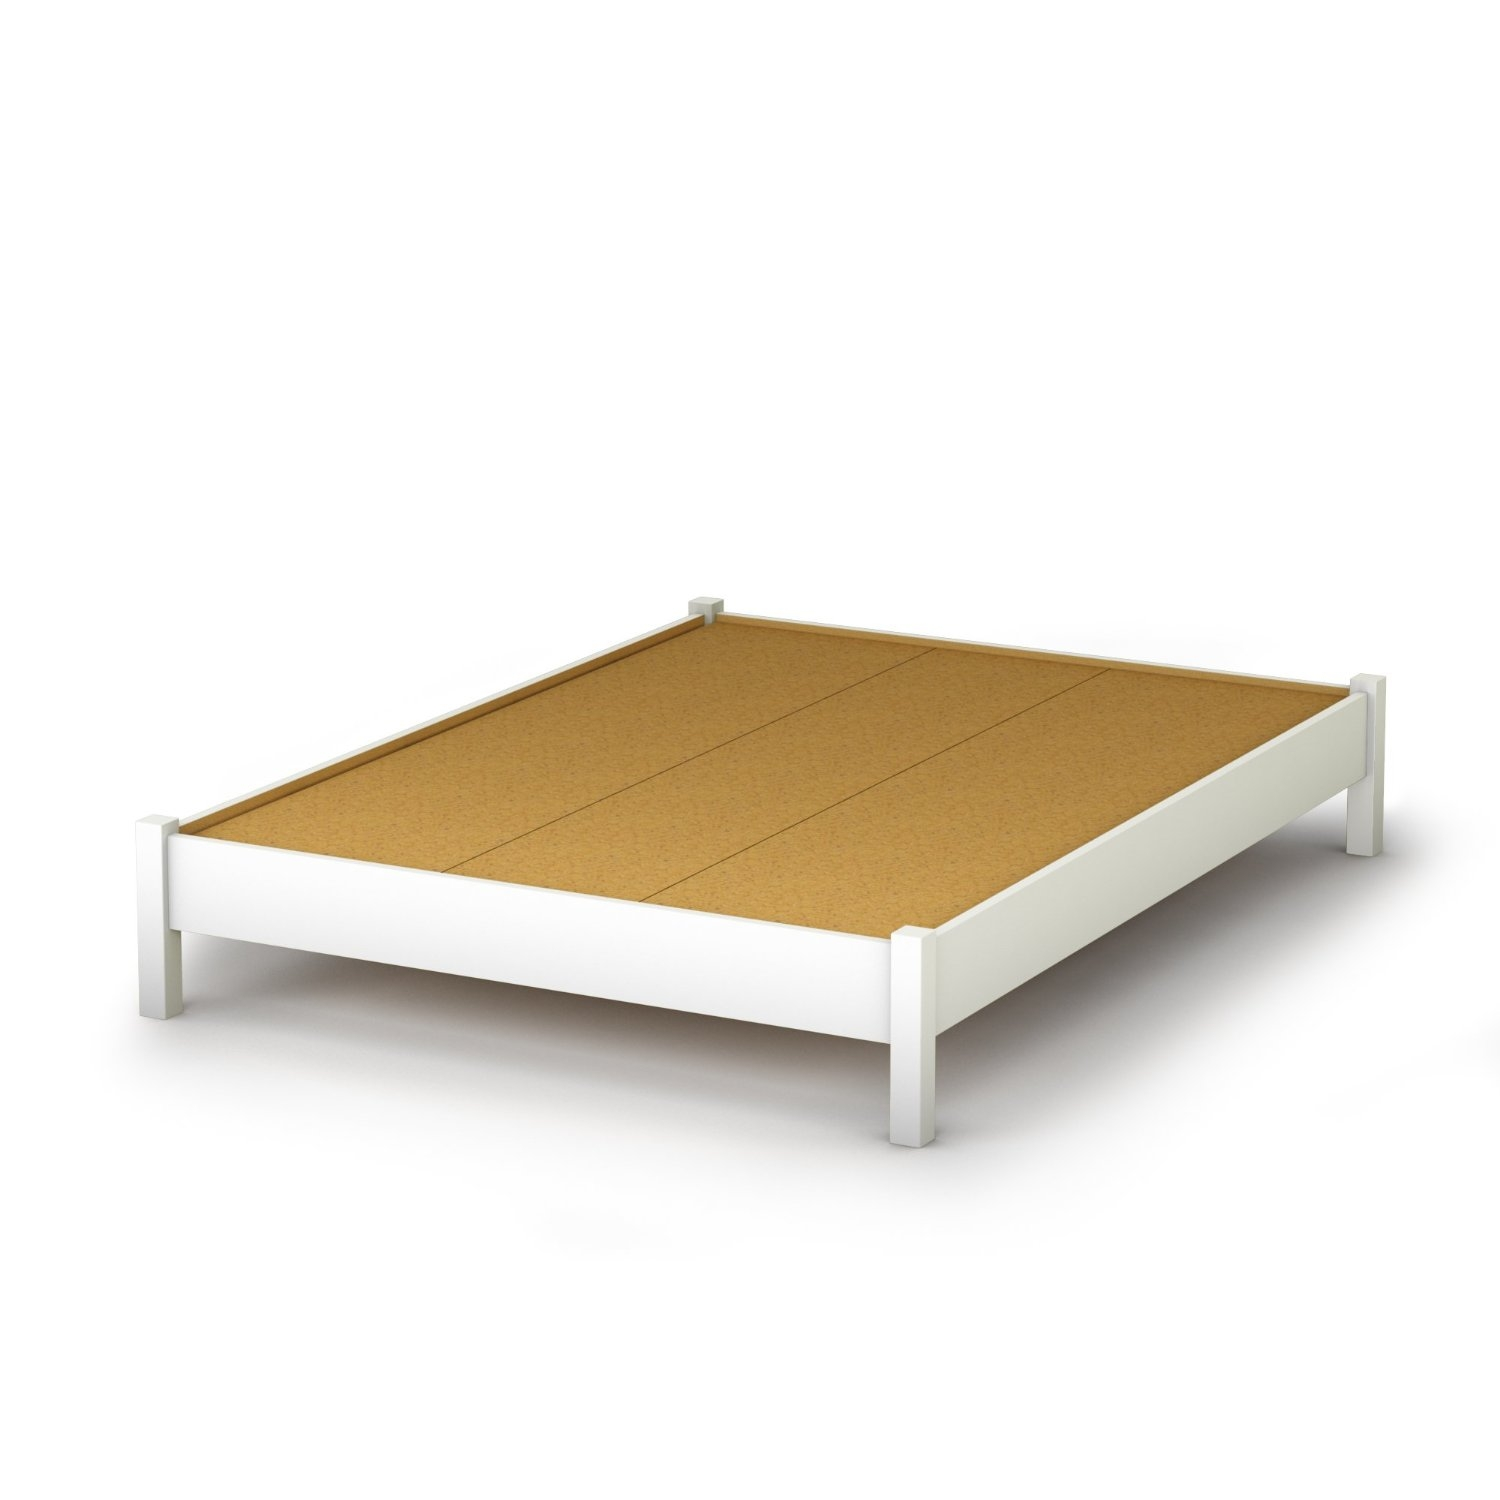 full size simple platform bed in white finish modern design - White Platform Bed Frame